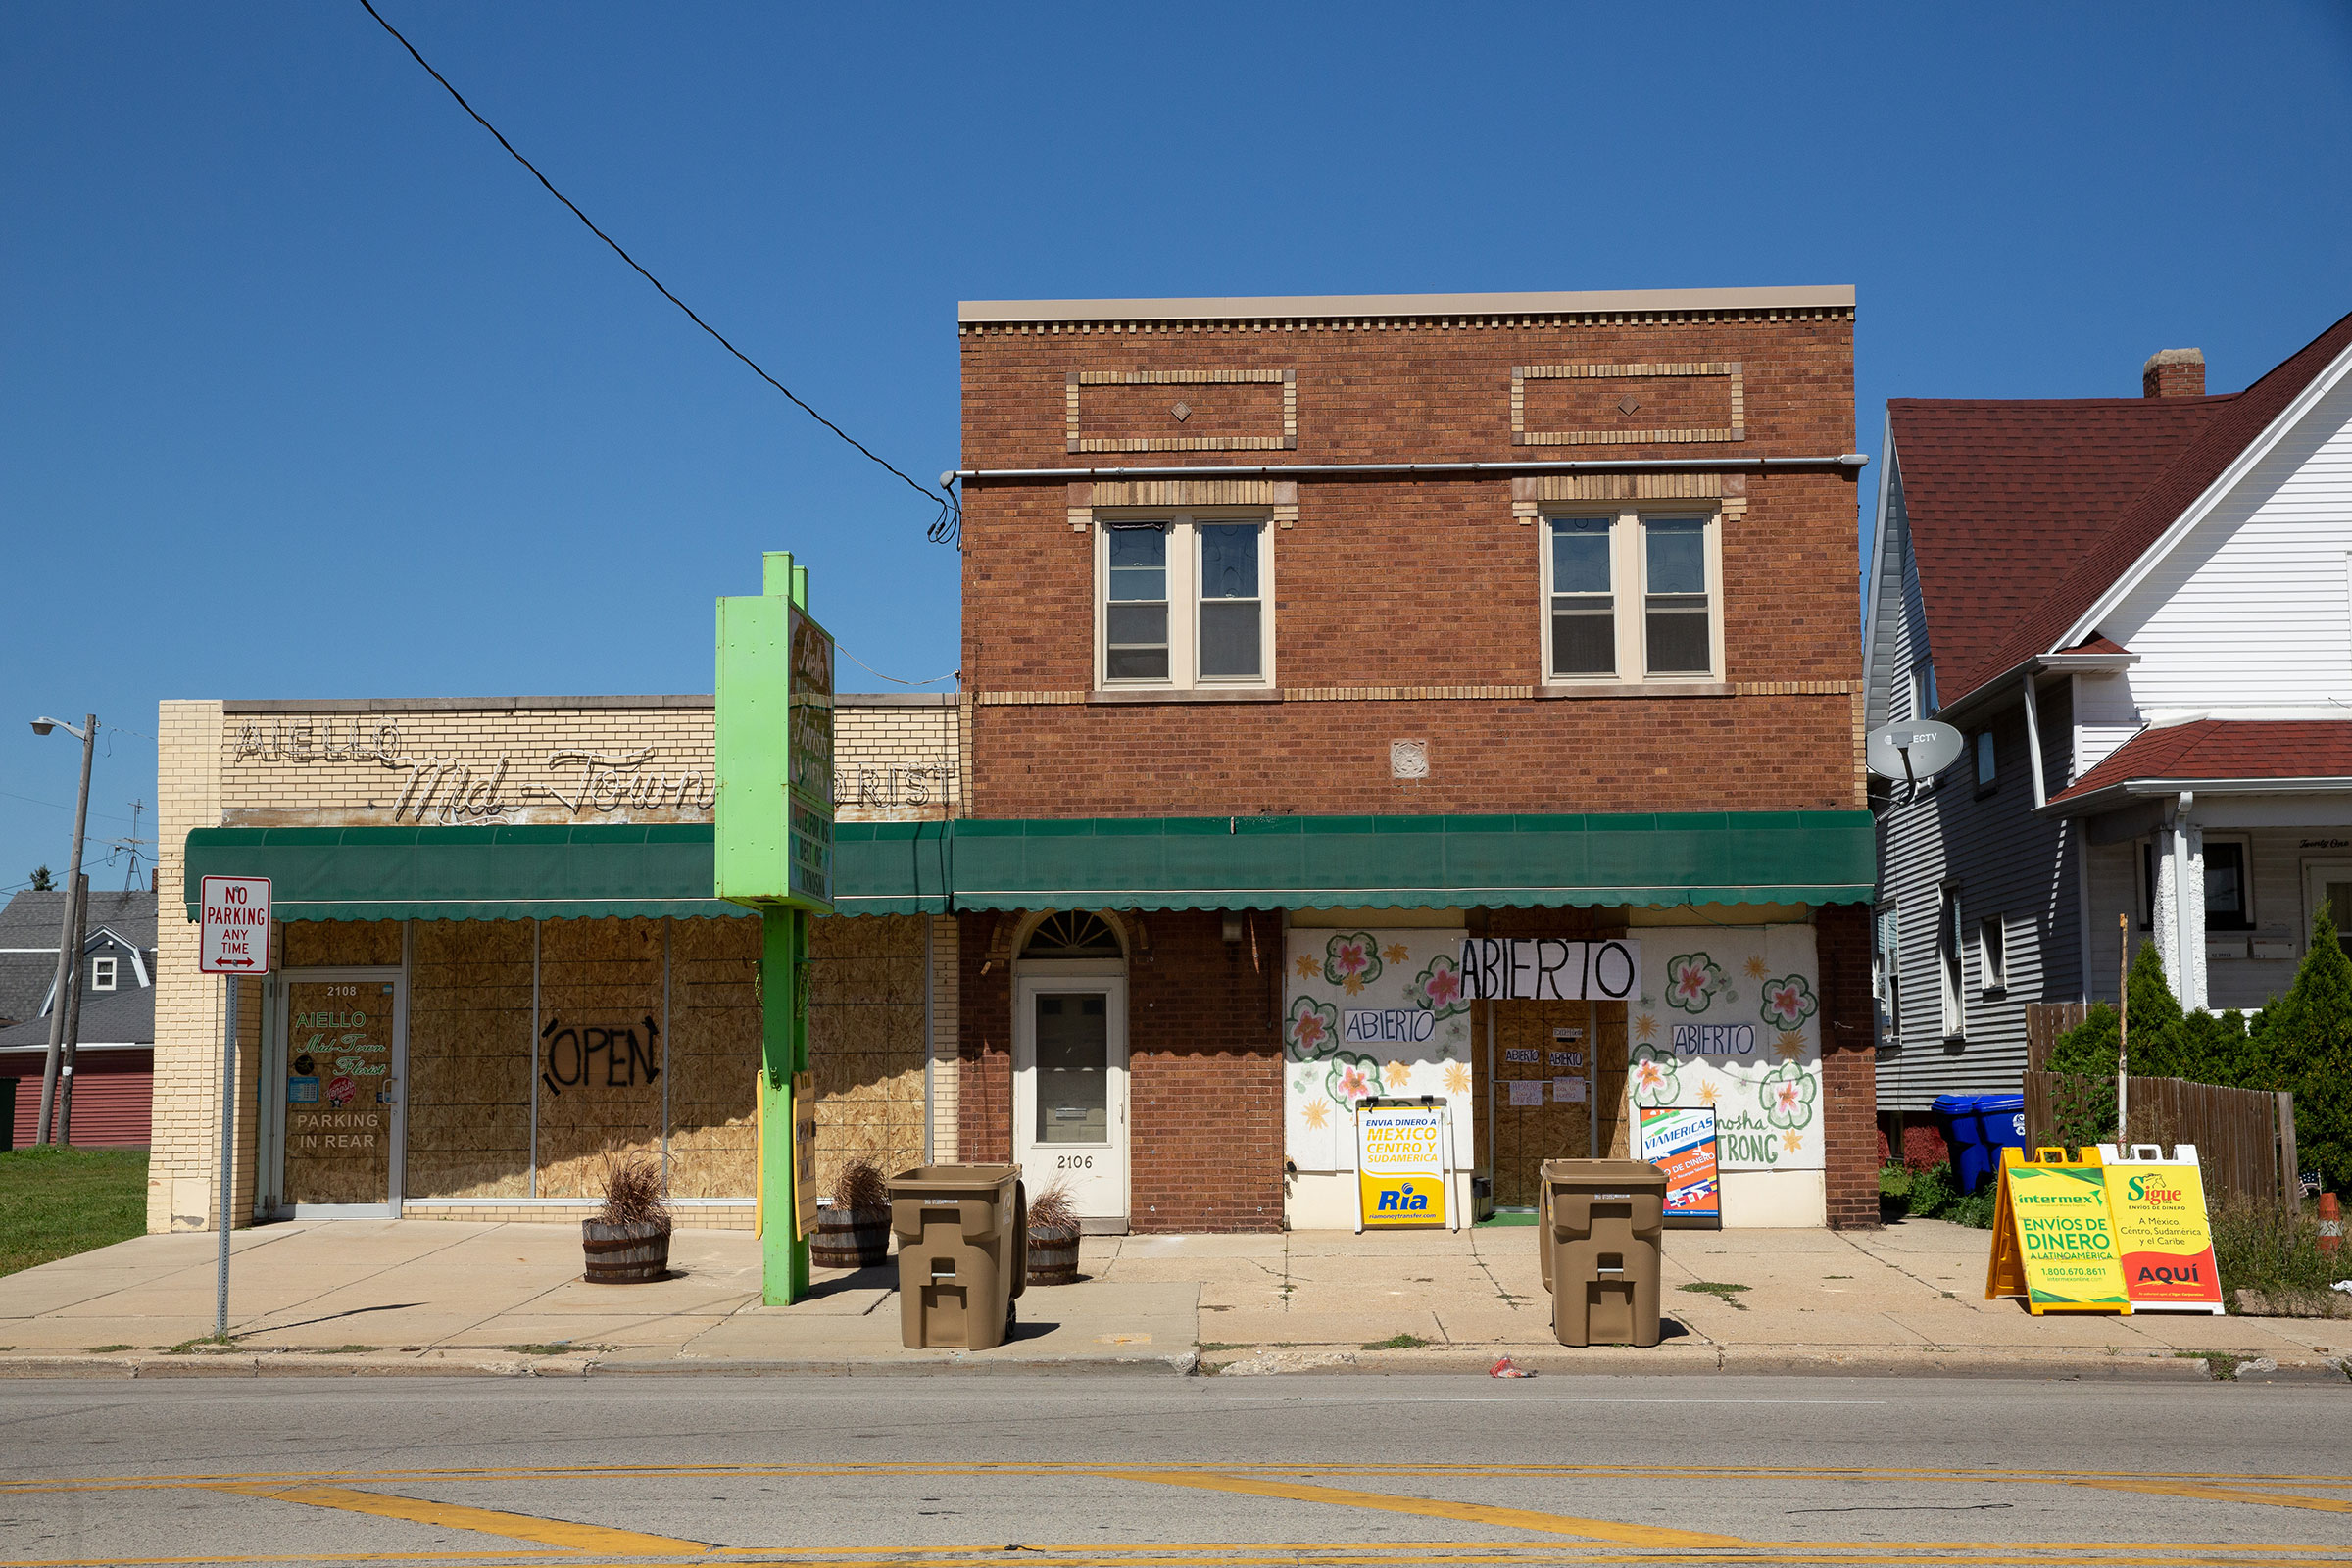 Boarded-up windows on businesses let patrons know they are still open in Kenosha, Wis., on Sept. 2, 2020.